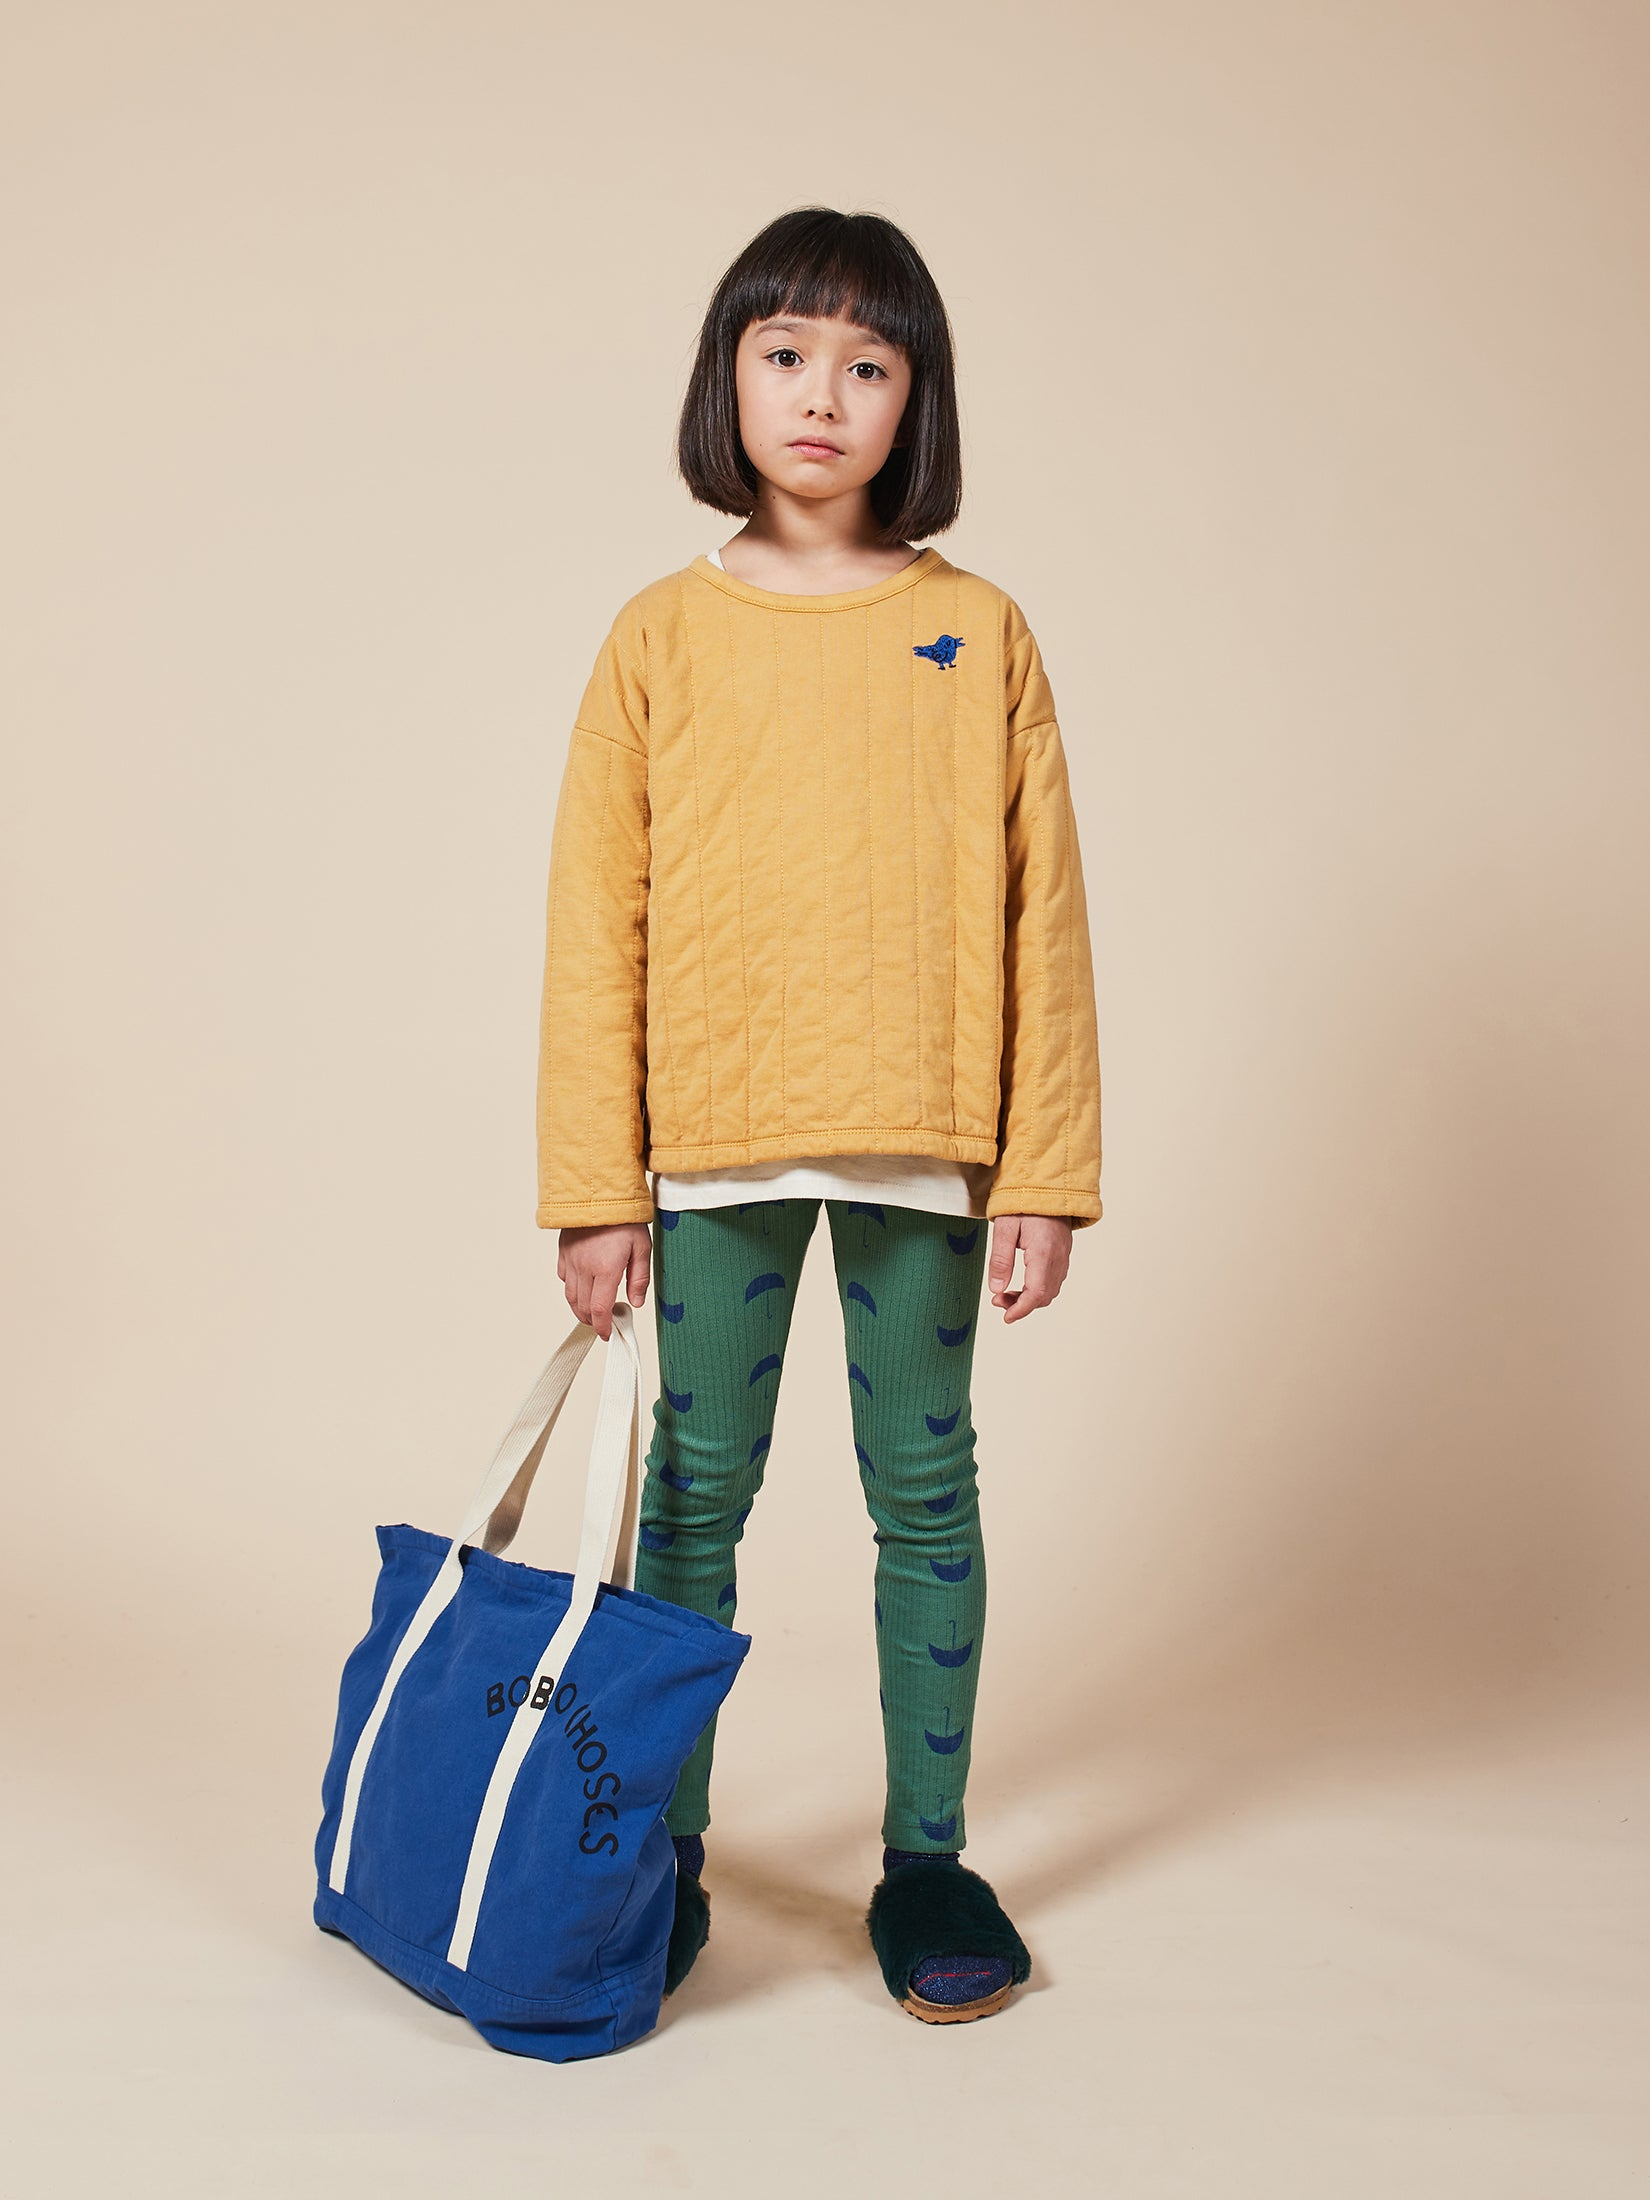 Bobo Choses Bird Tuner Quilted Sweatshirt